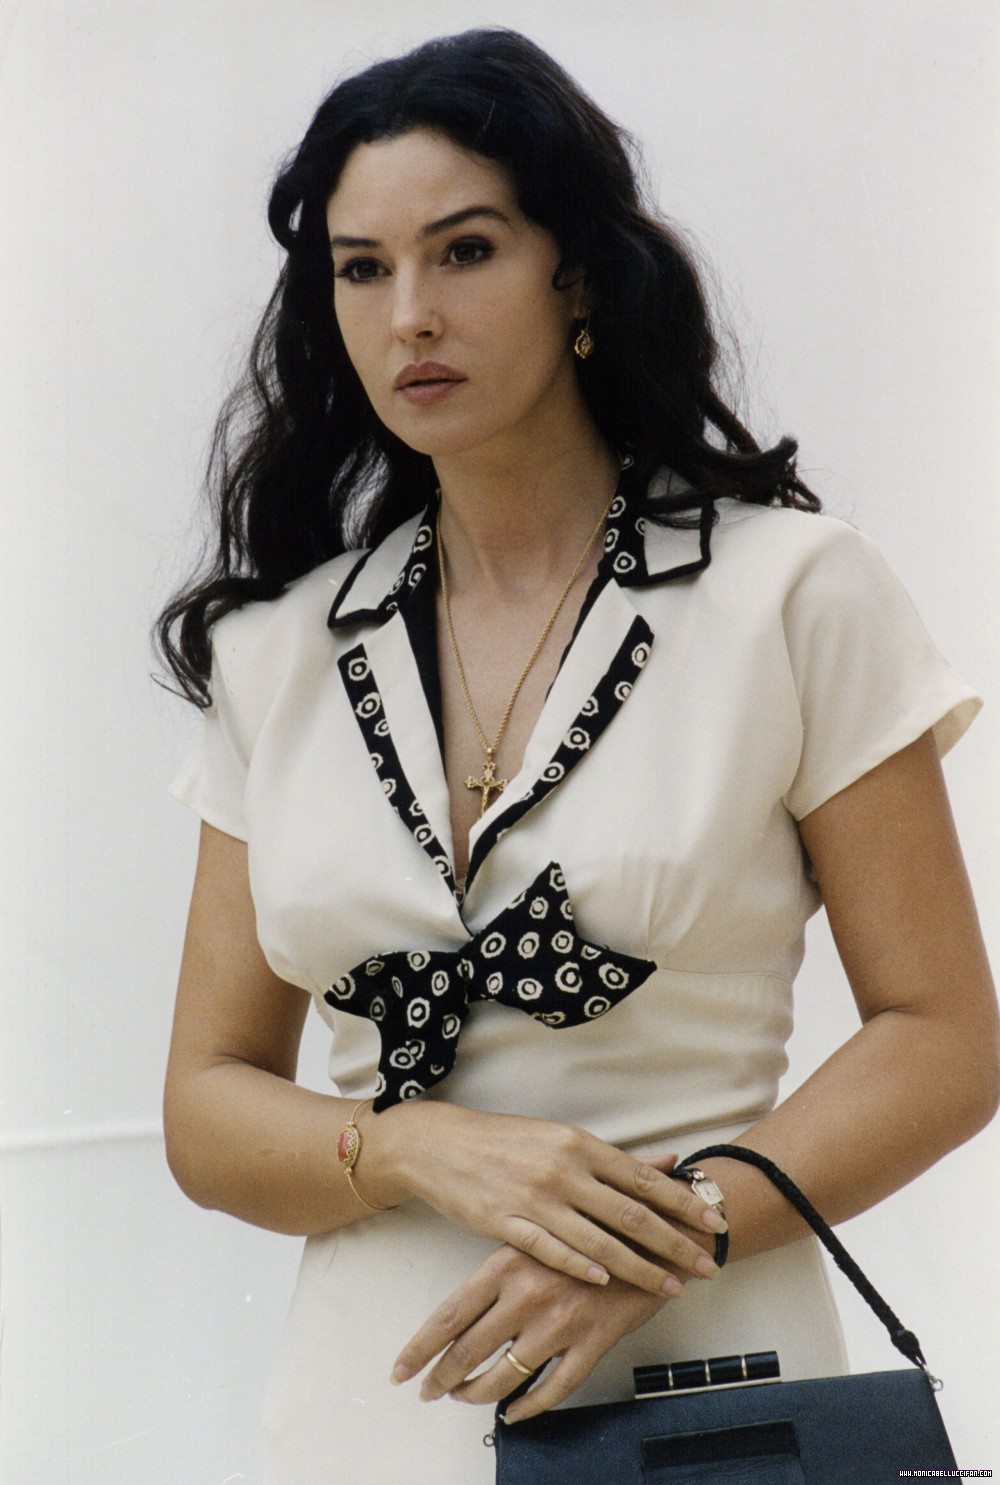 perfect girls hot pics of monica bellucci from the movie malena. Black Bedroom Furniture Sets. Home Design Ideas